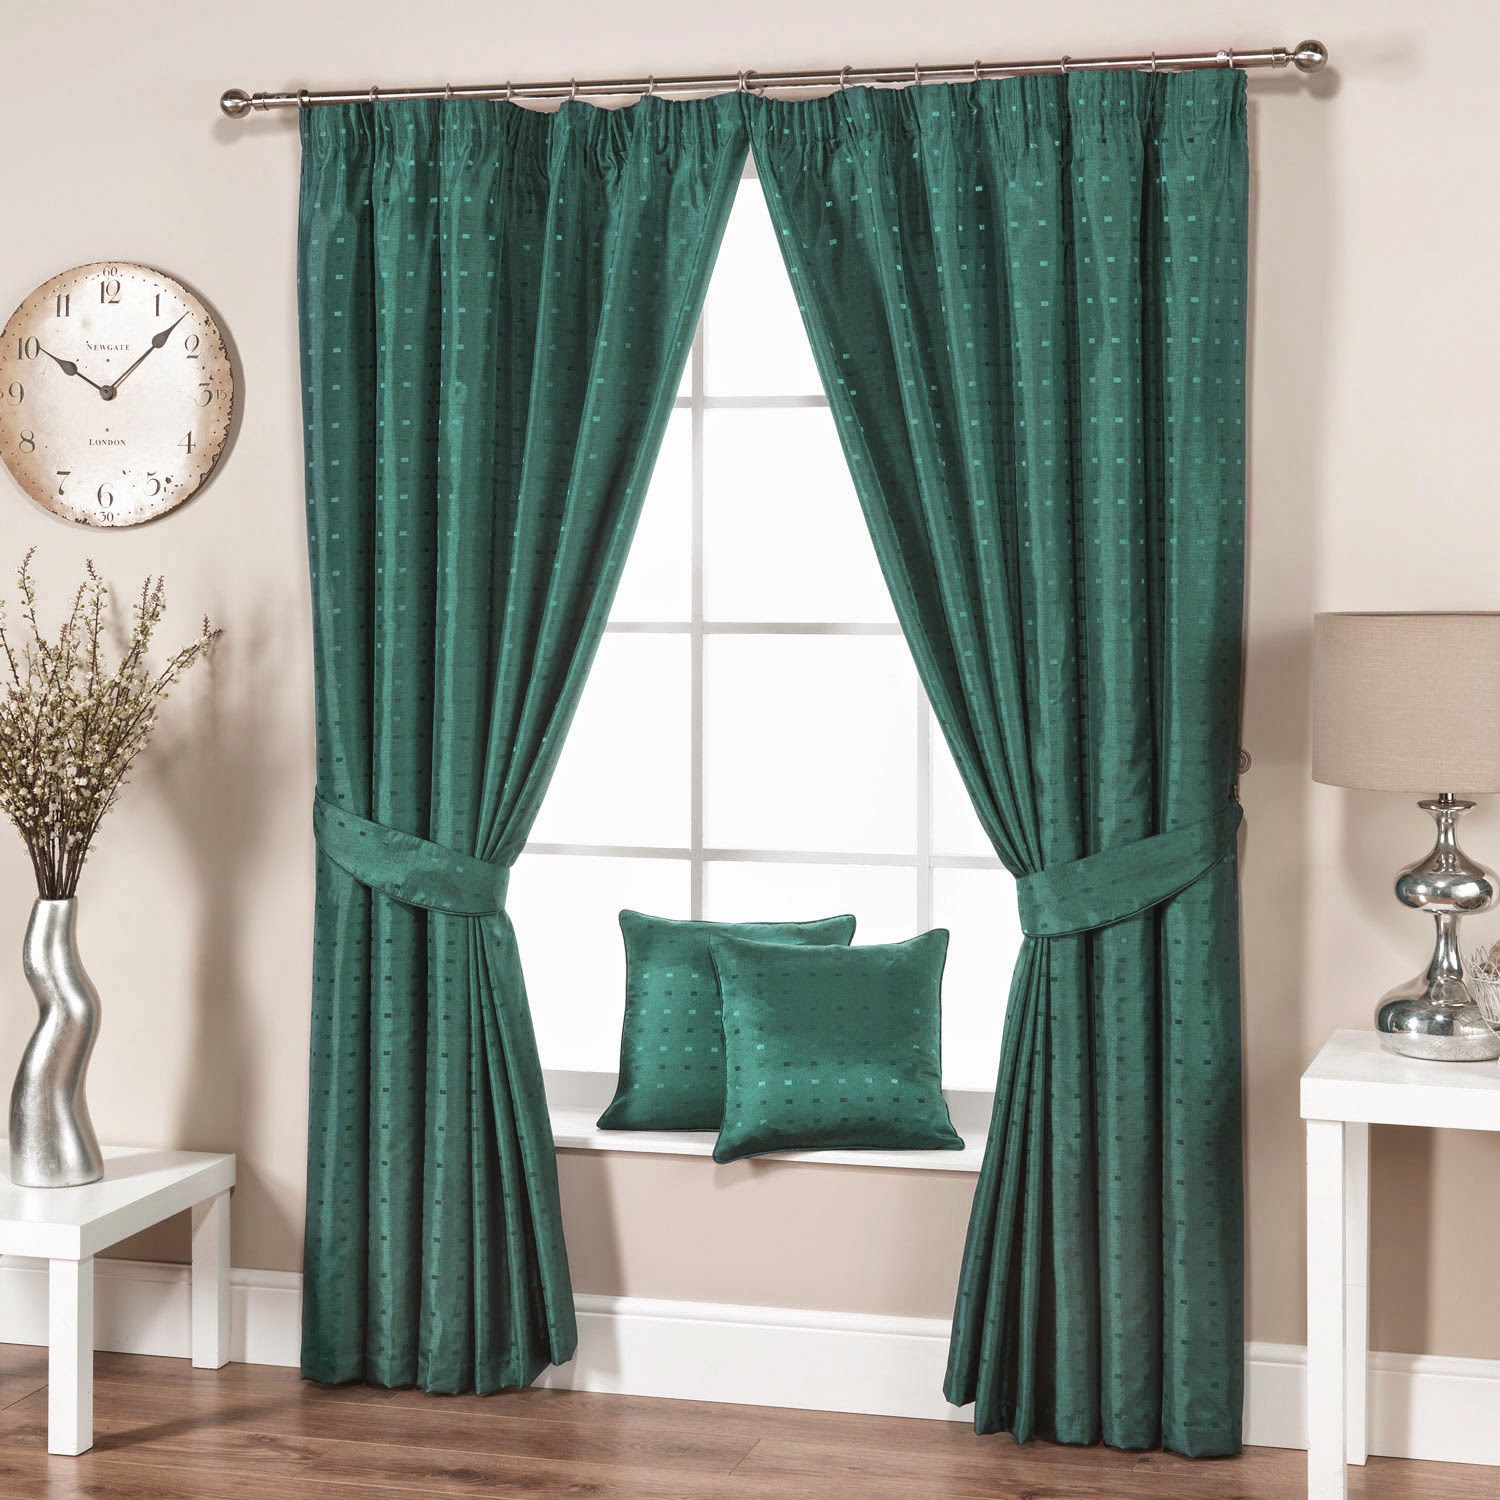 Green living room curtains for modern interior for Curtains in living room